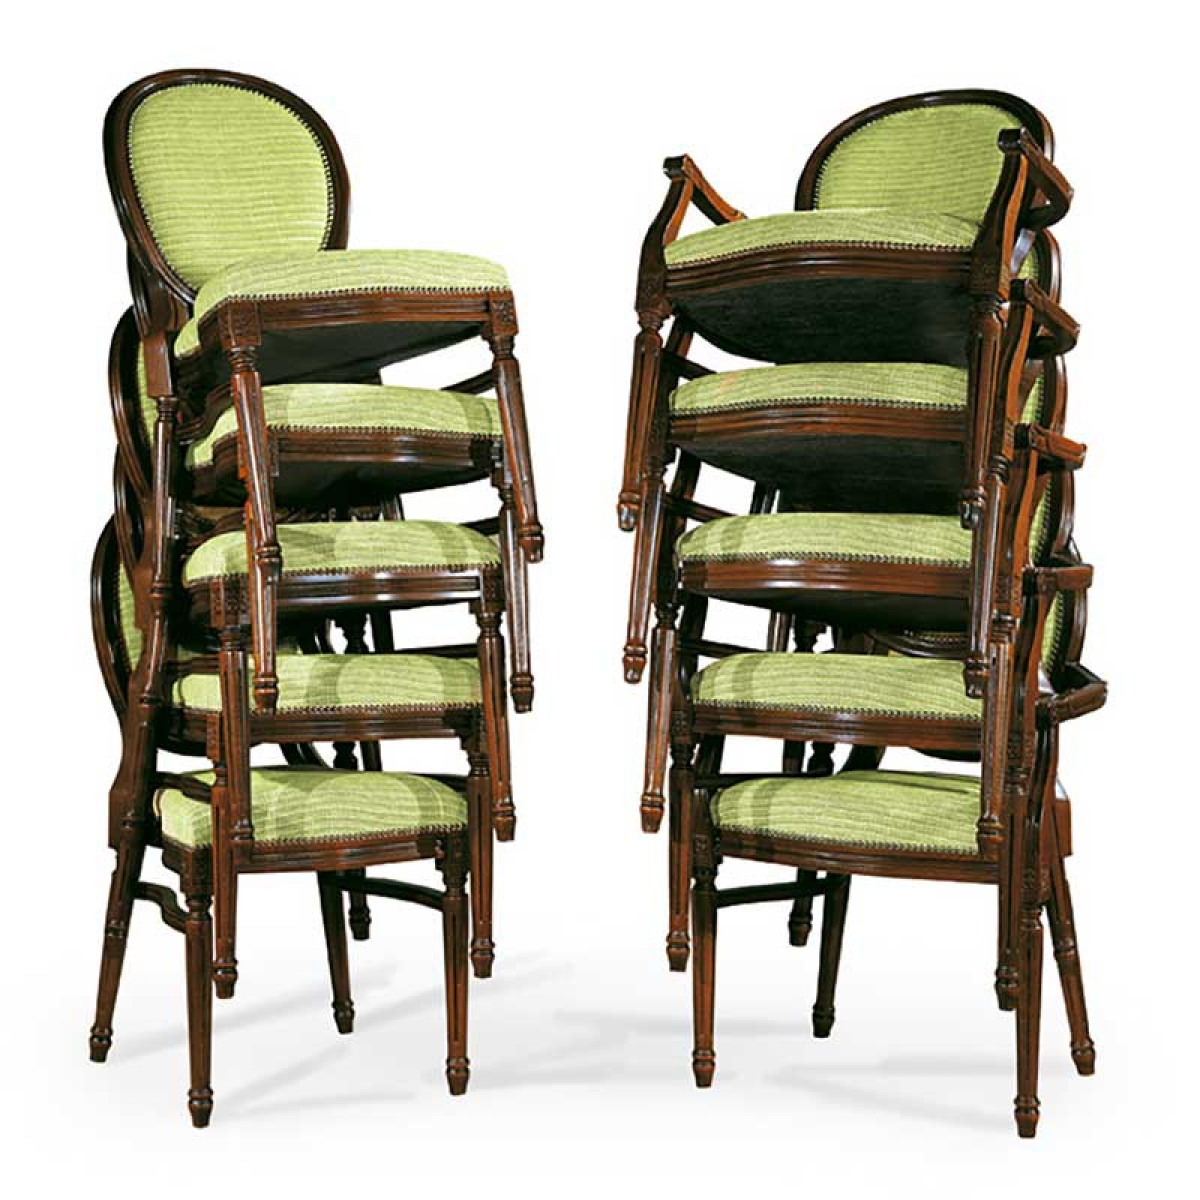 Classic Louis XVI replica stackable chairs and armchairs with side stretchers, upholstered in light green fabric, made in Italy by Sevensedie.